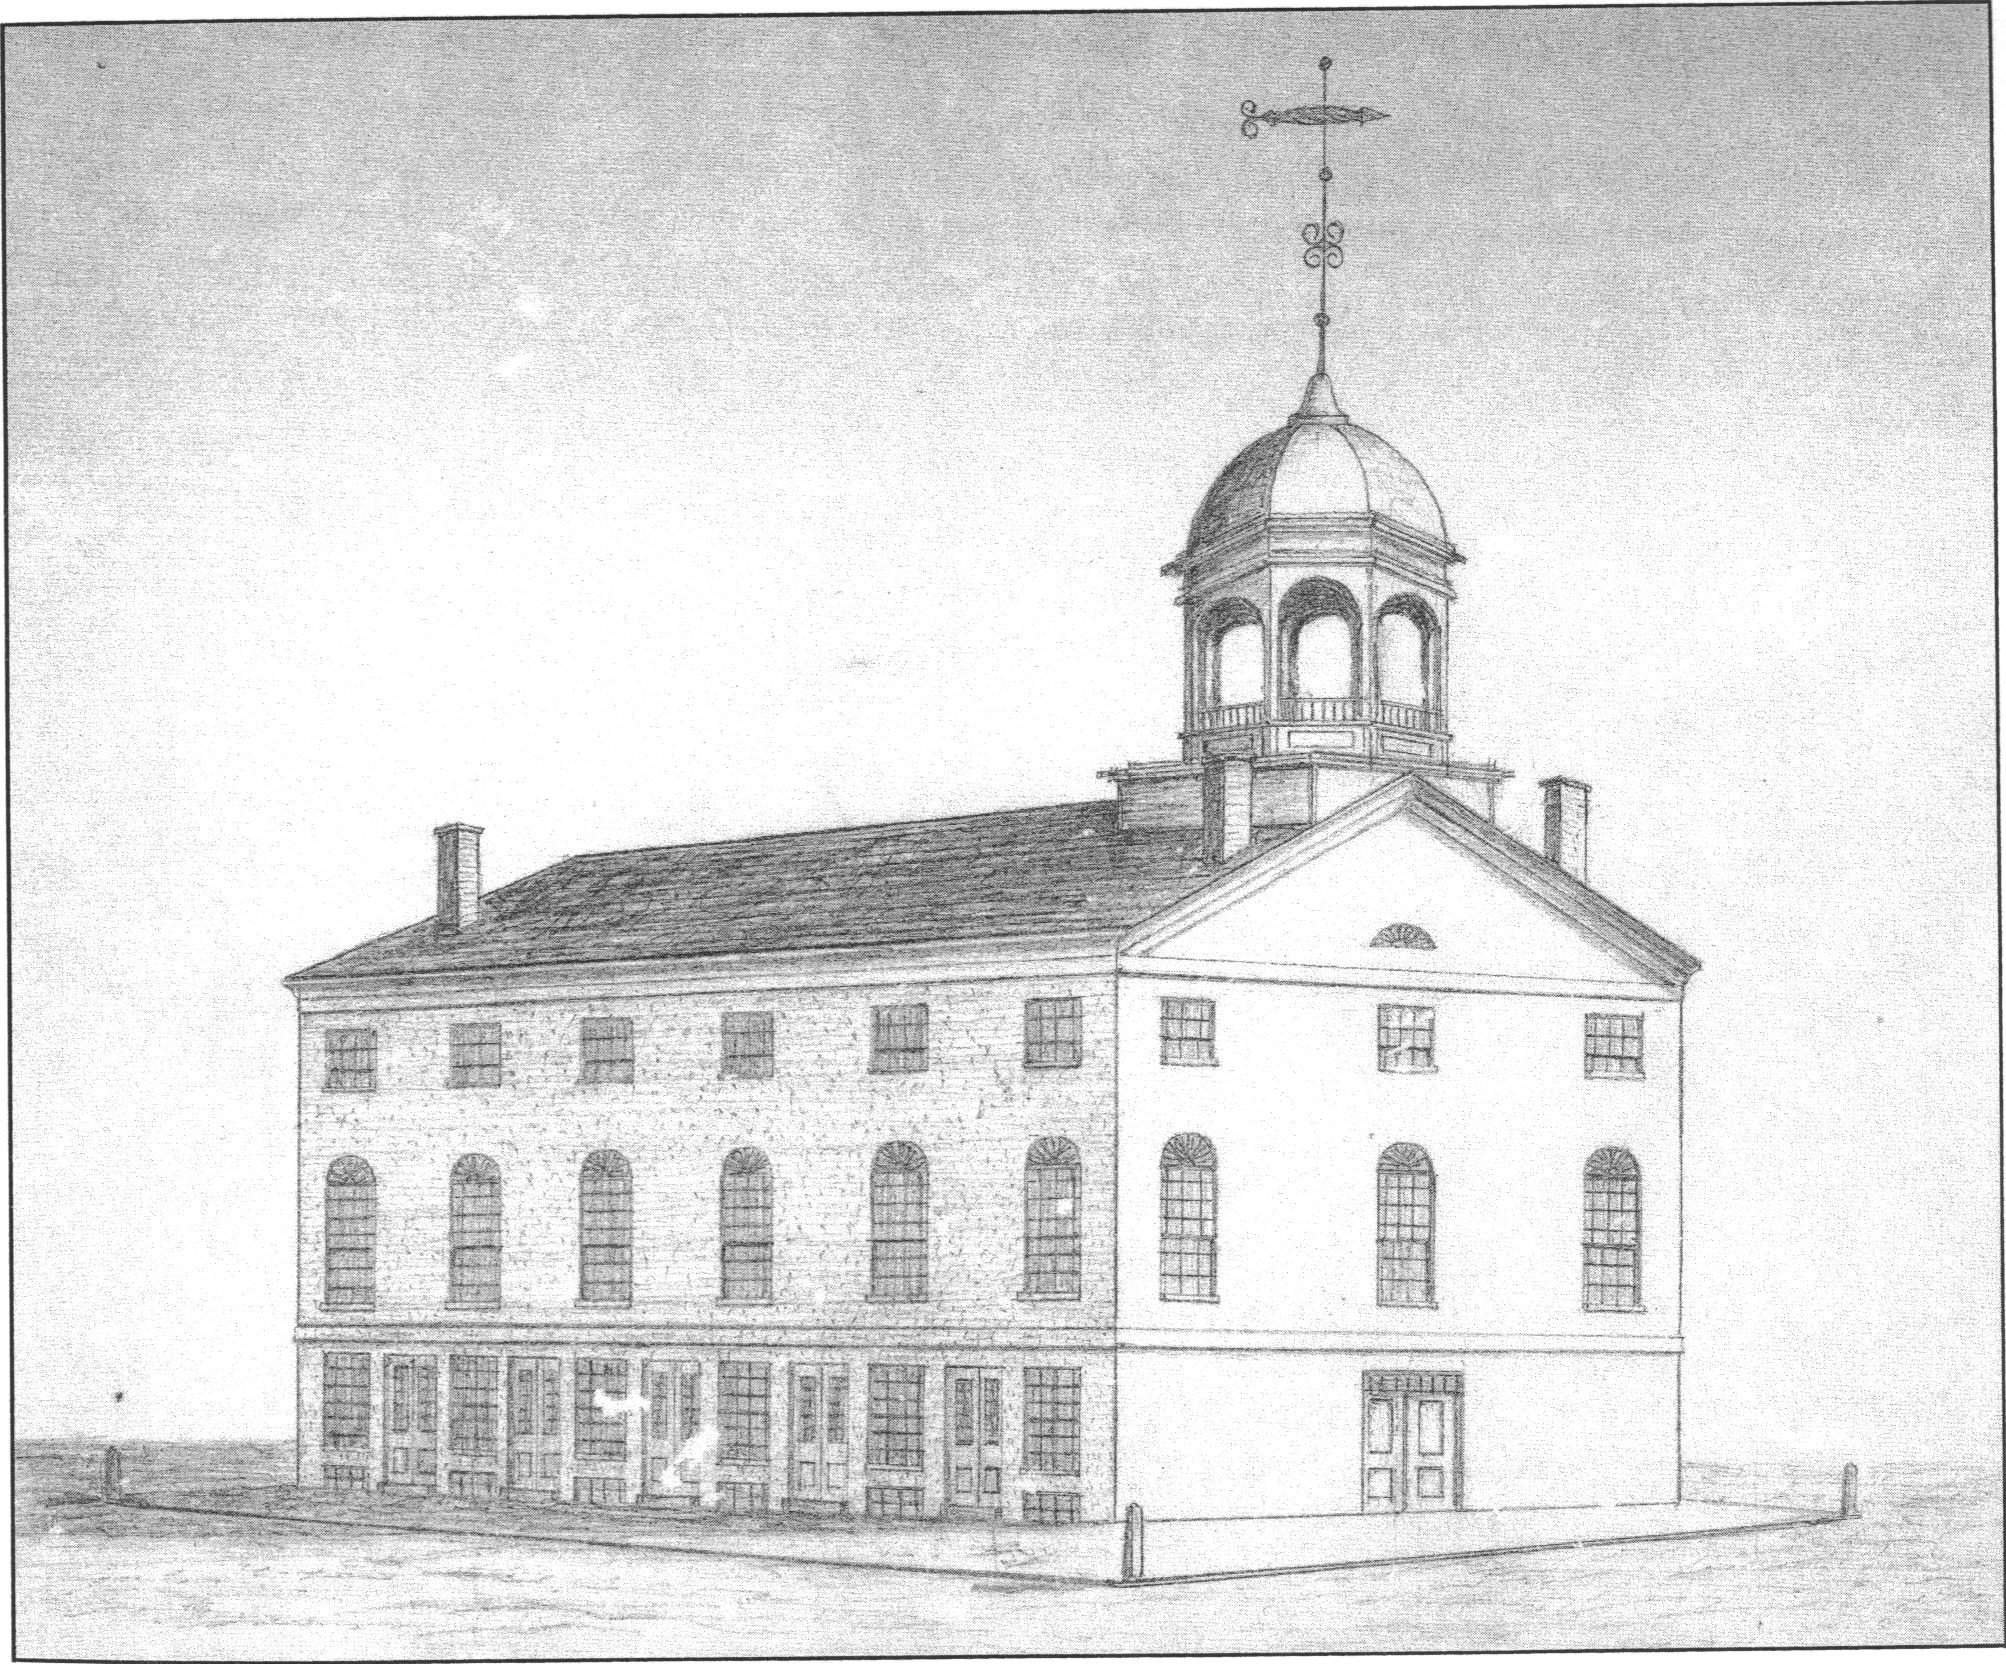 The Old Market House 1830s